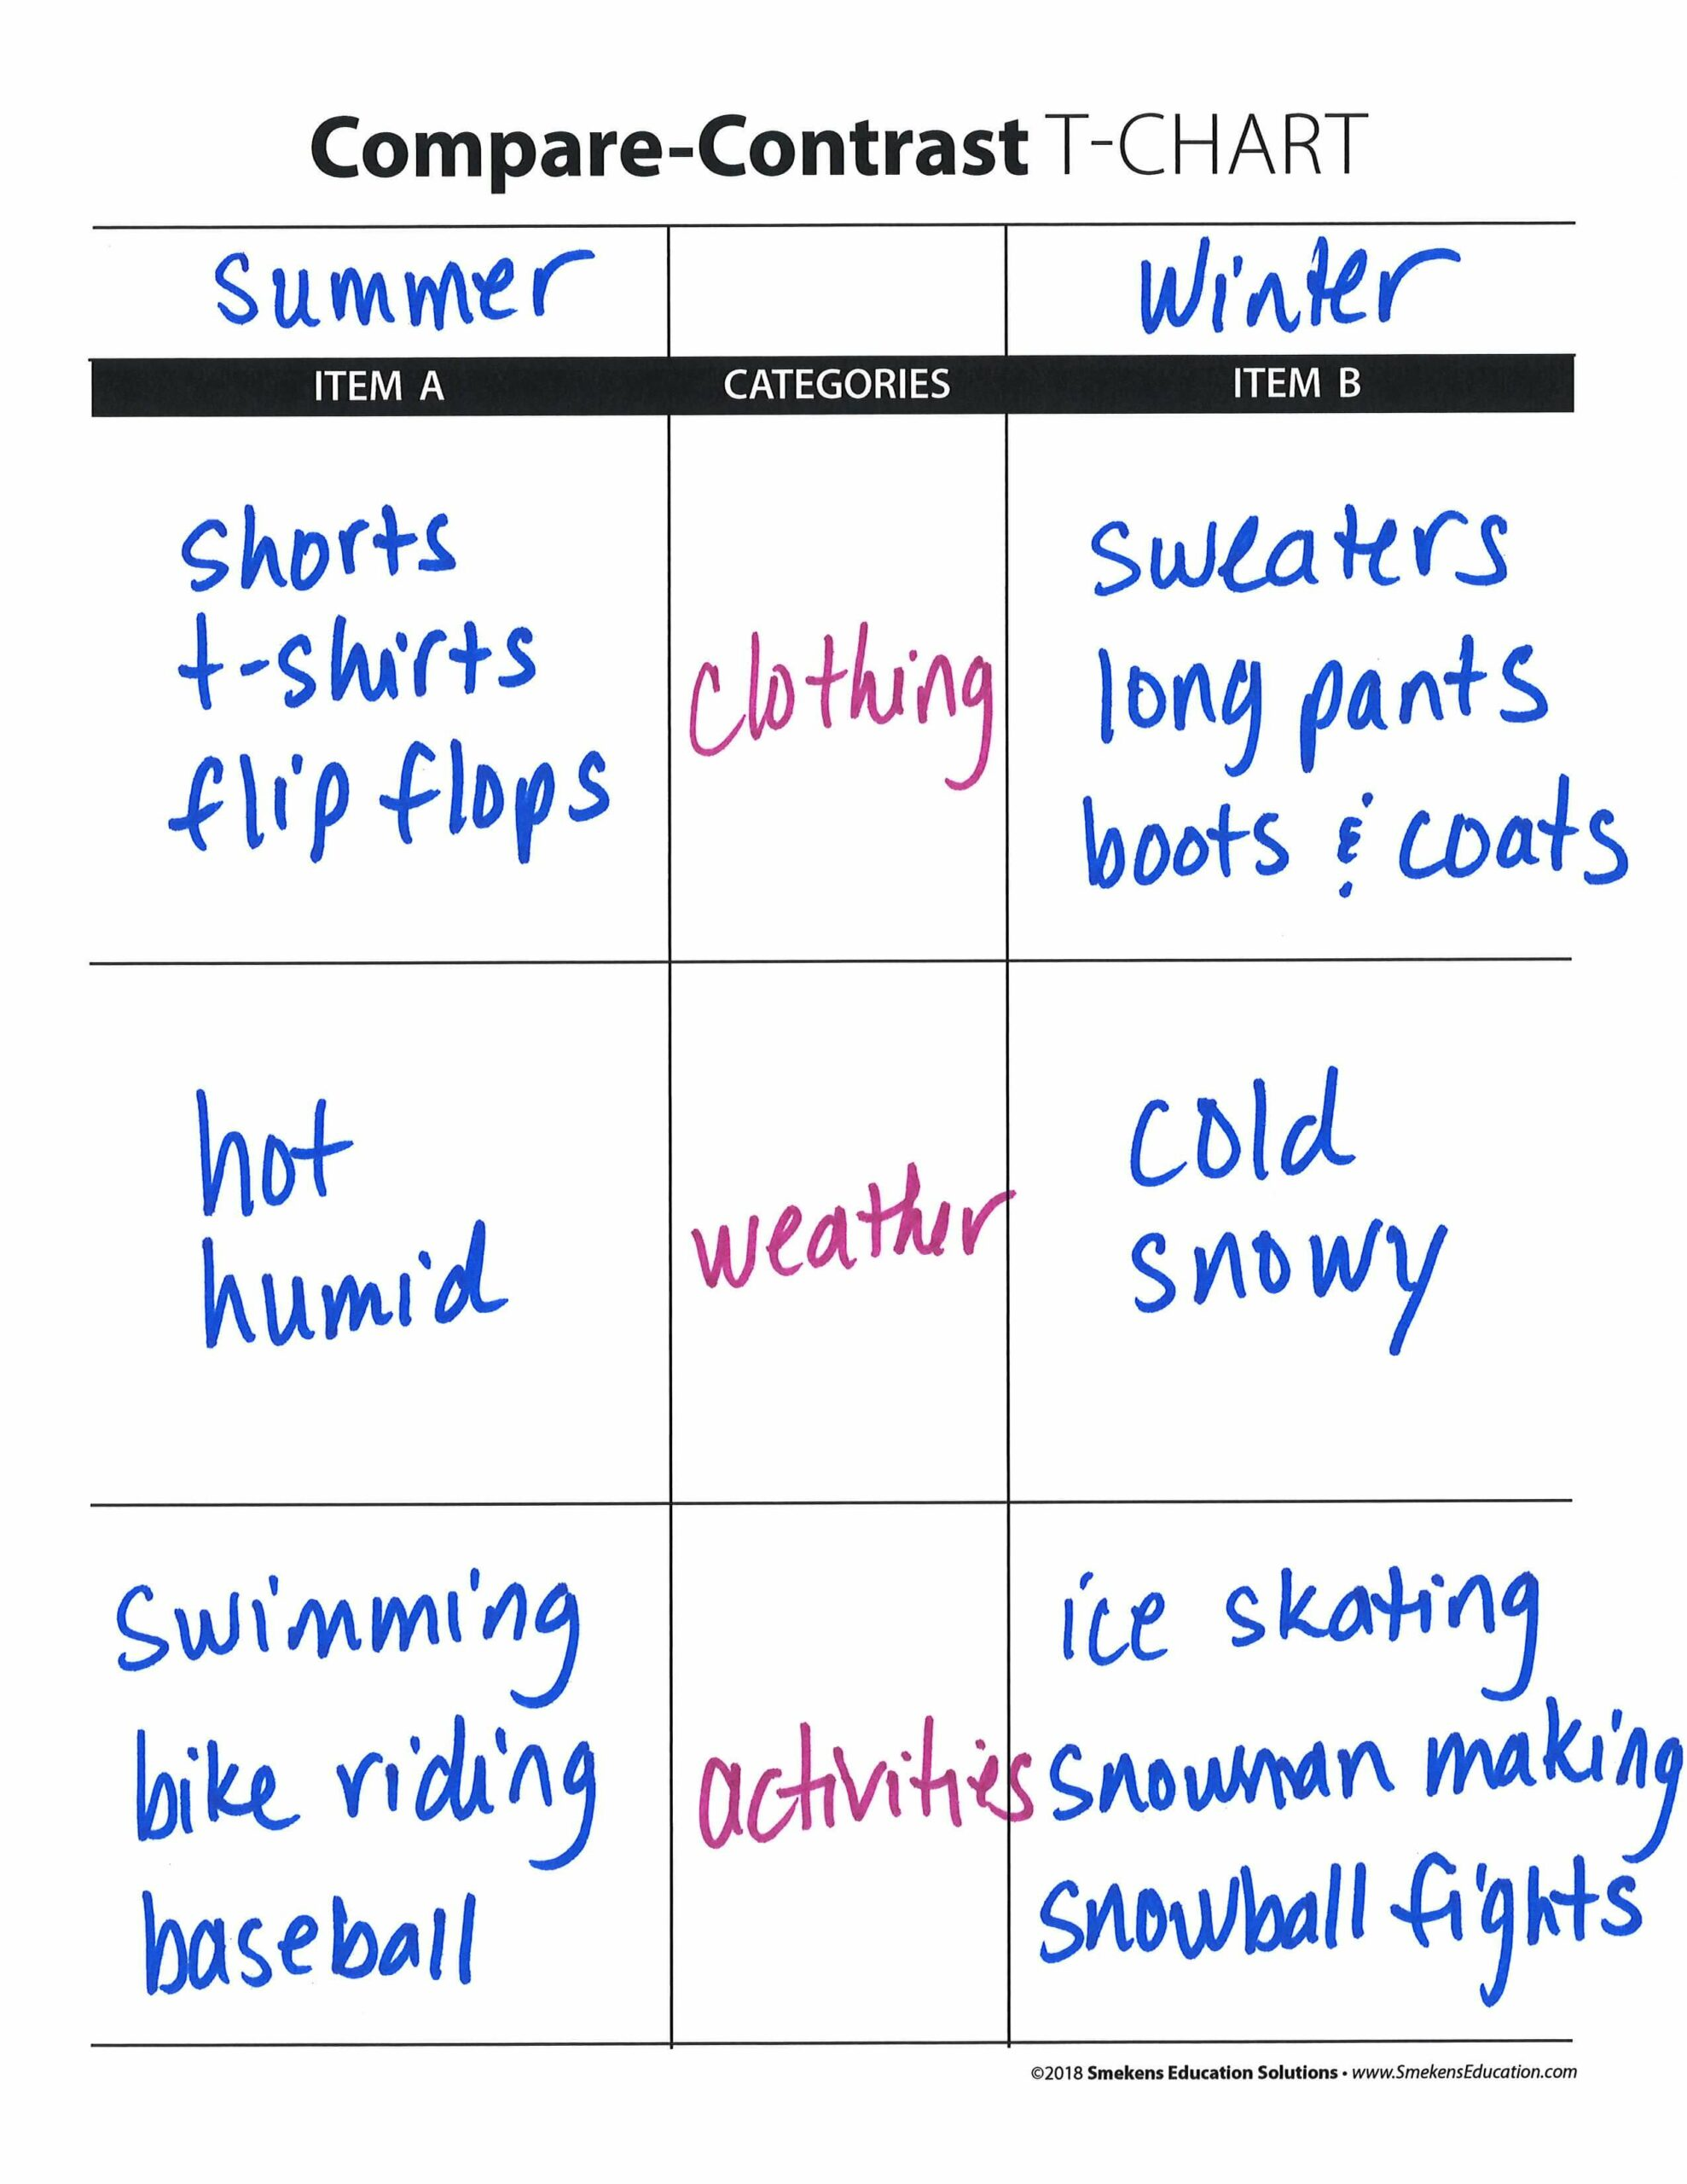 Compare-Contrast T-Chart - Summer v Winter with 3 Categories